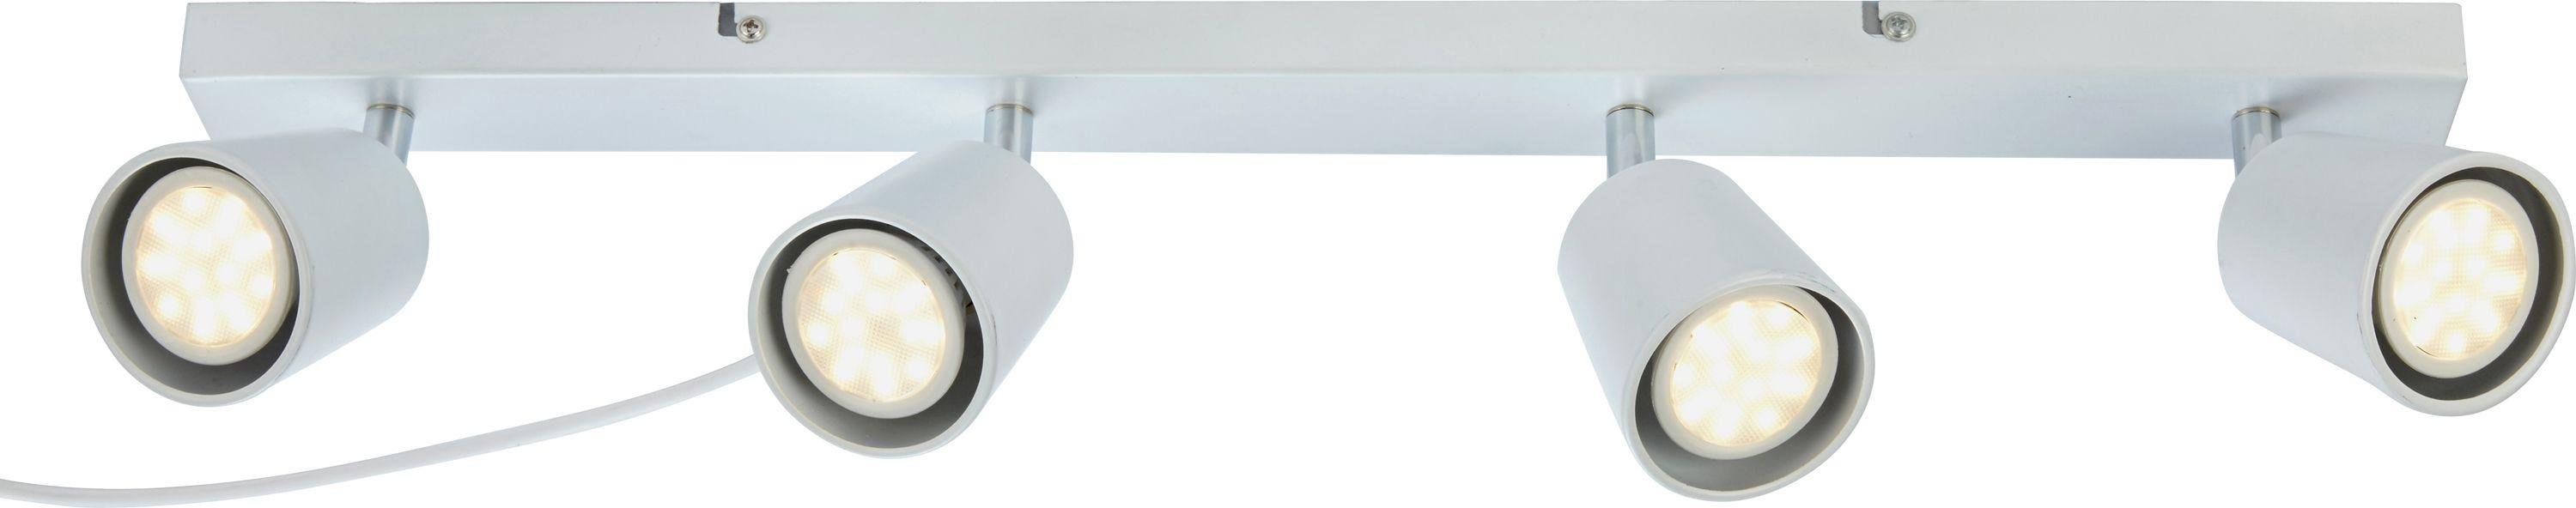 Collection - Miles 4 Spotlight Ceiling Bar - White